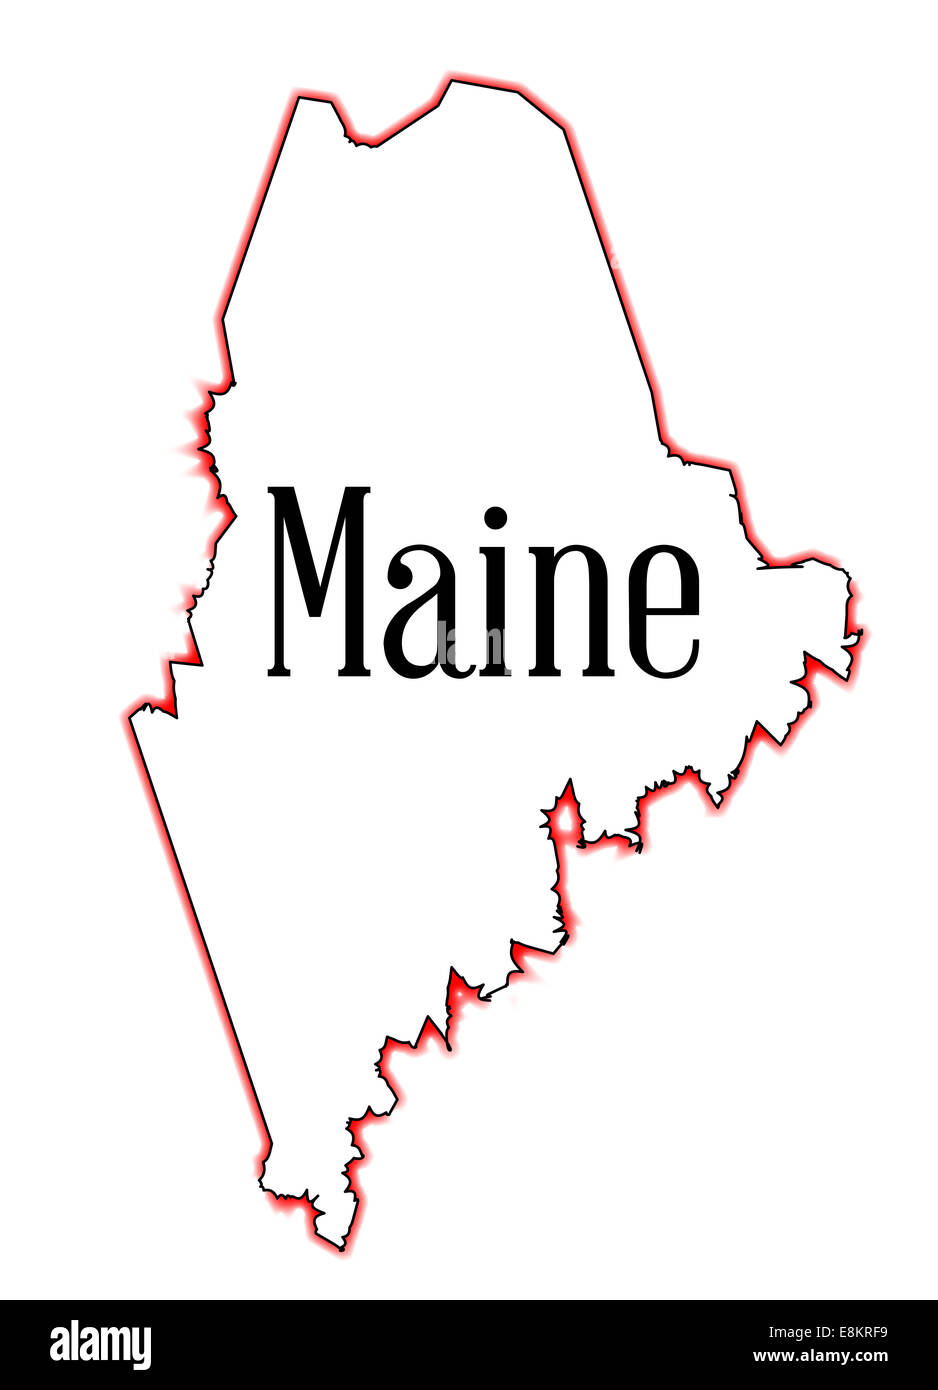 Outline Map Of The State Of Maine Over White Stock Photo 74194269